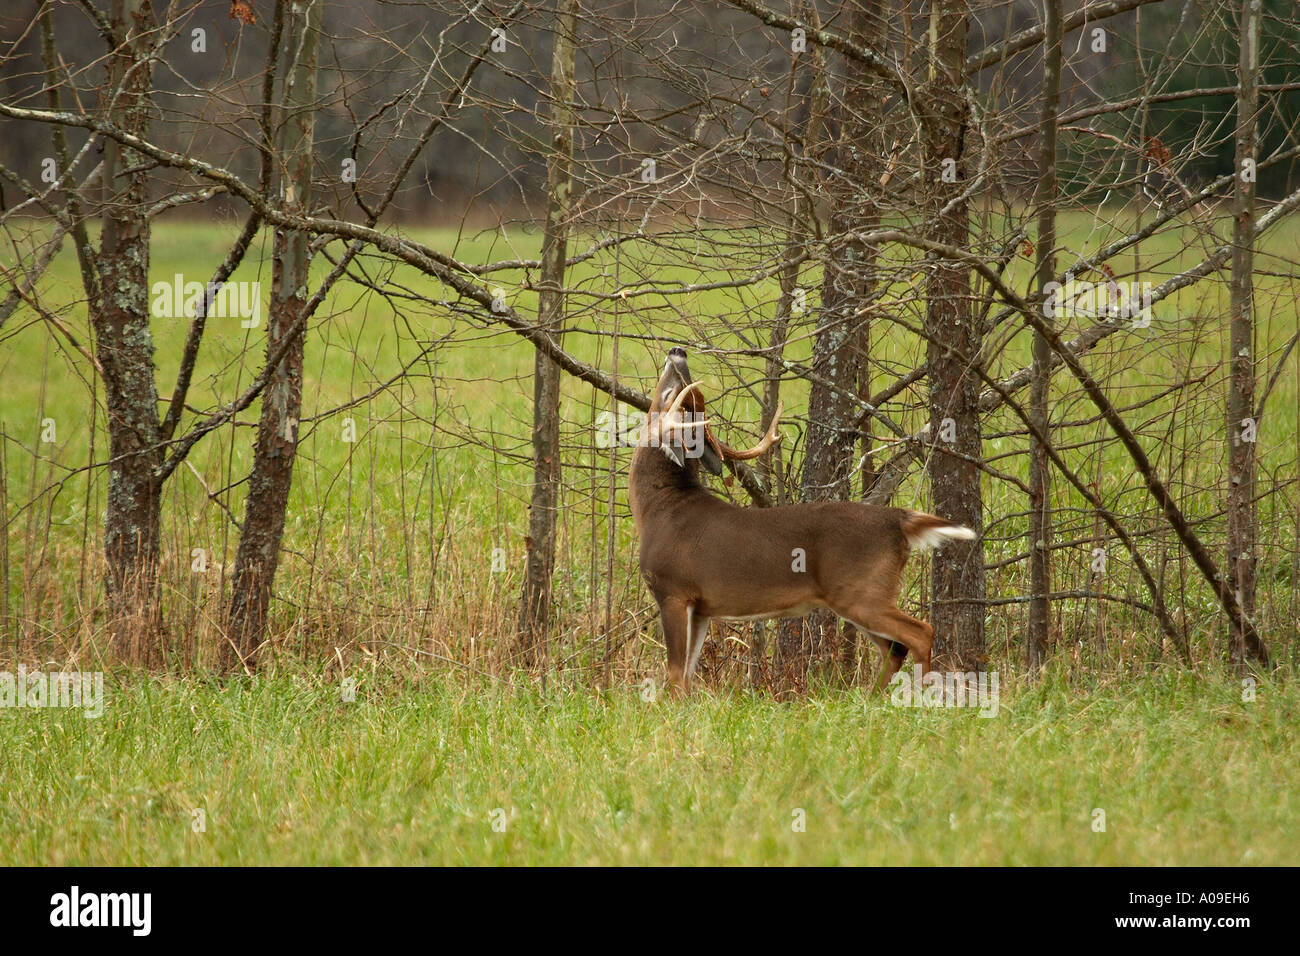 A Whitetail Buck Making A Scstock Photo